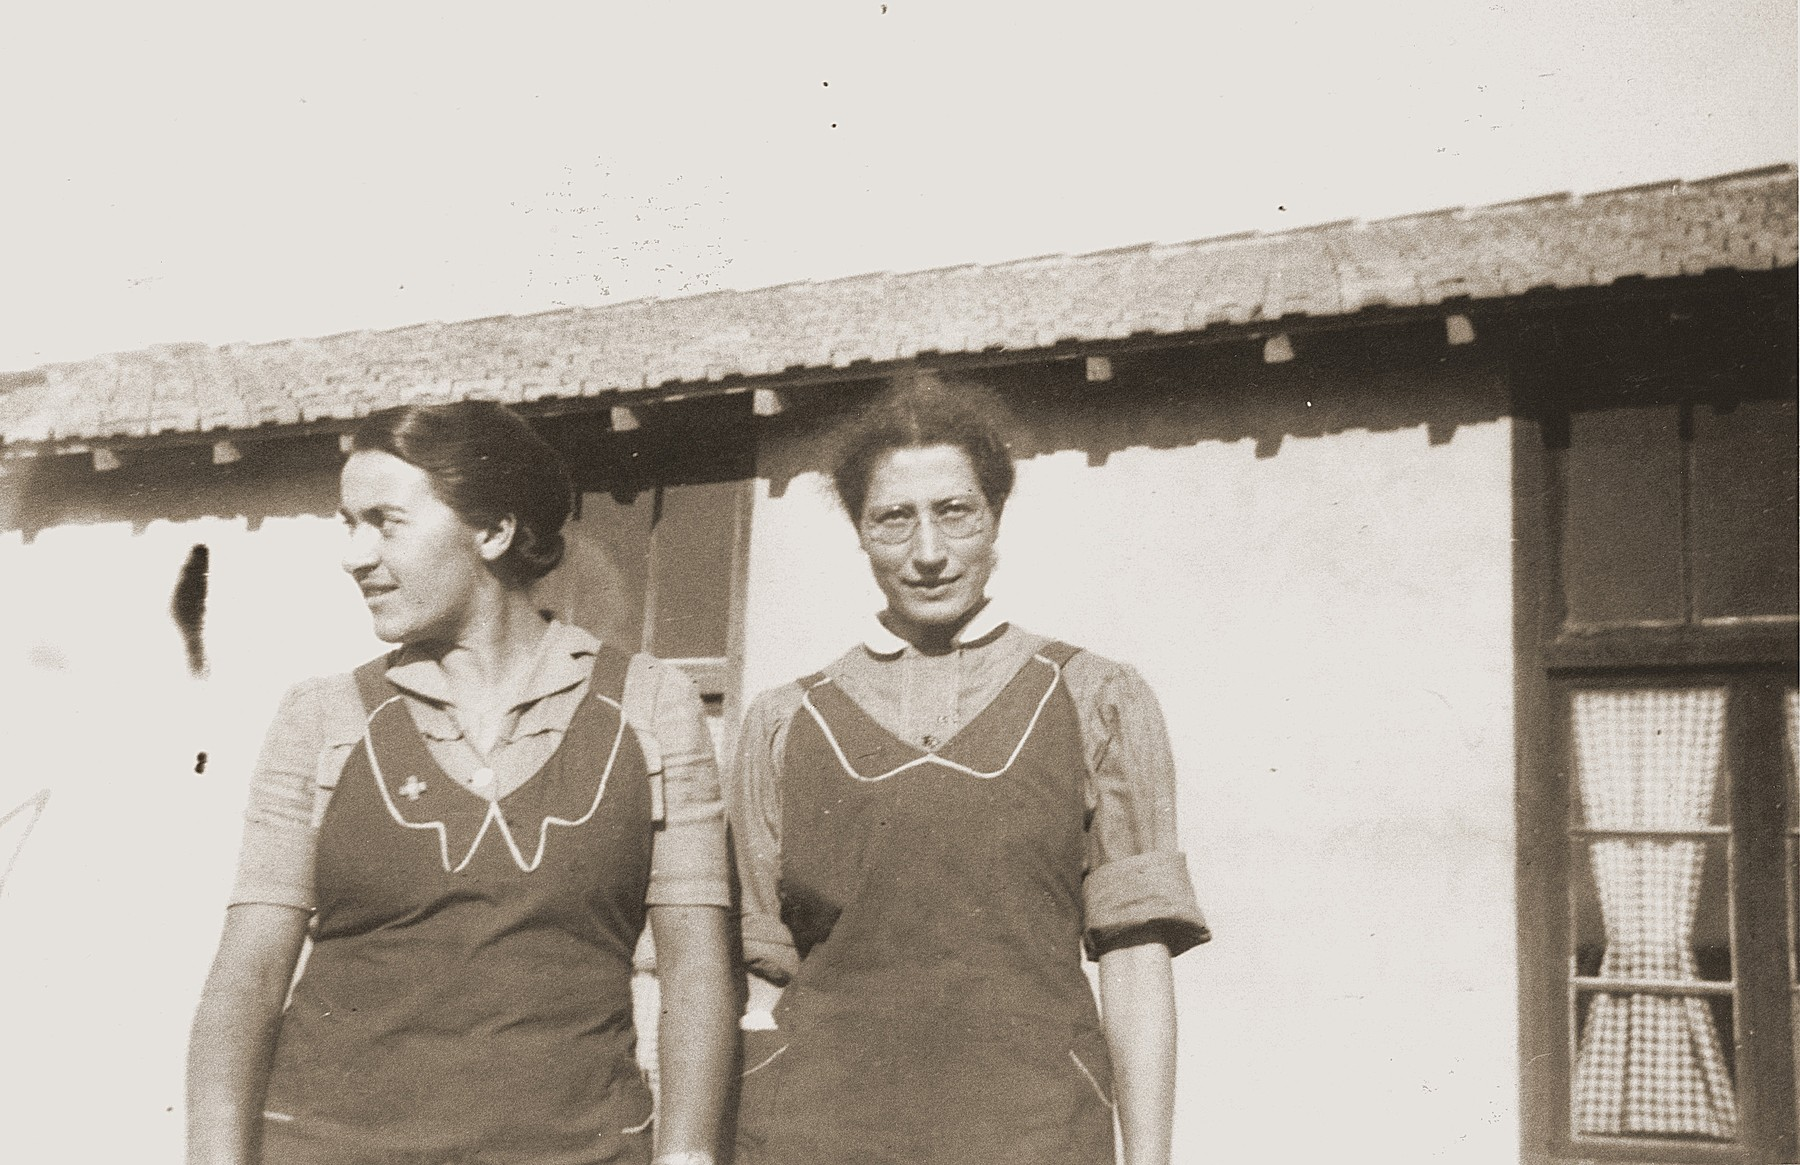 Secours Suisse relief workers Friedel Reiter (left) and Heidi Stierlin stand outside a barracks at the Rivesaltes internment camp.